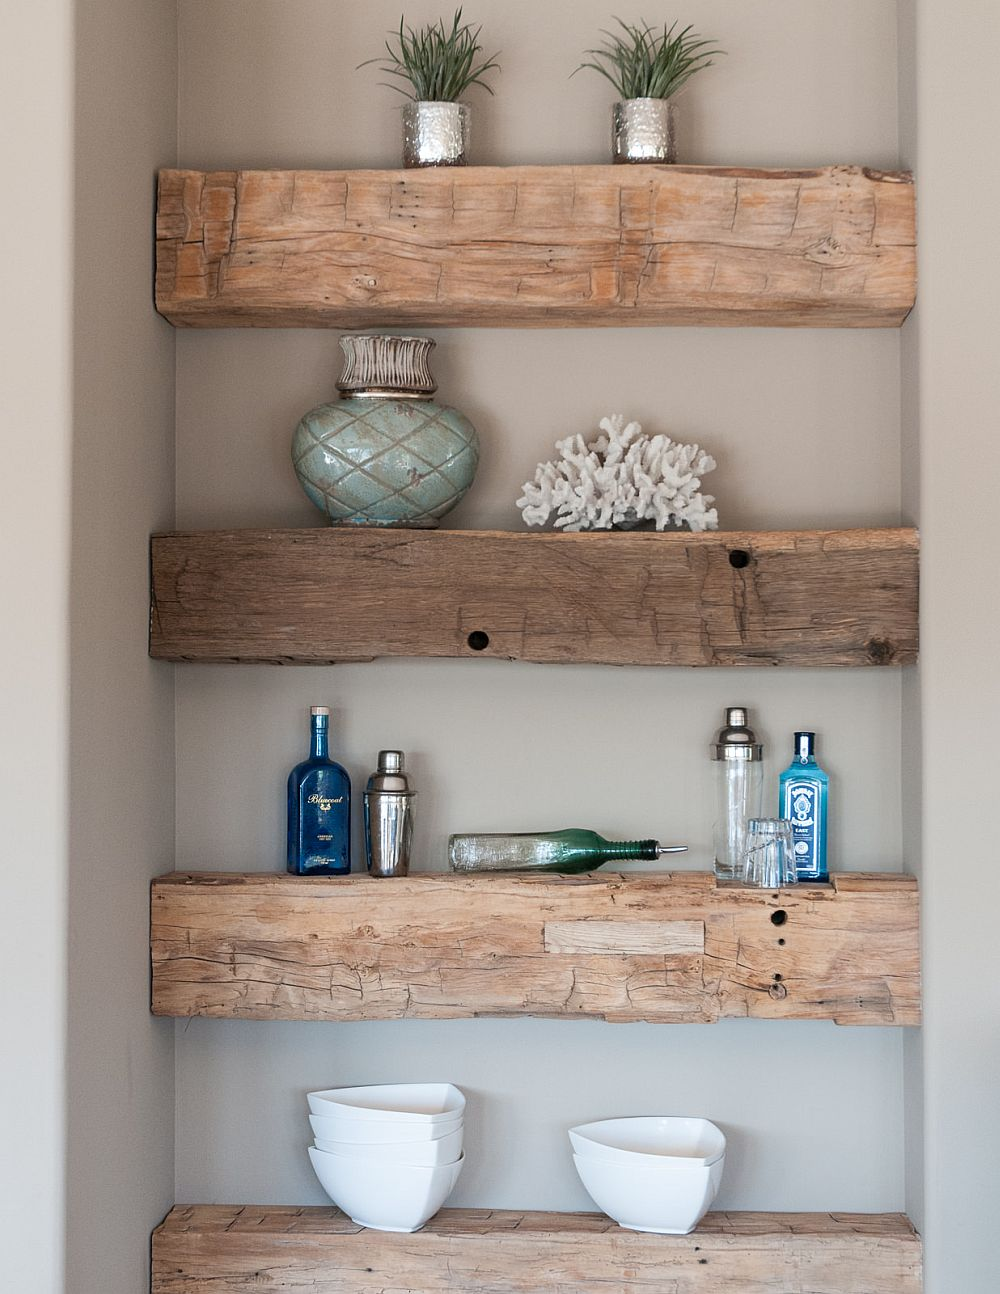 Turn the small niche in the kitchen into an attractive display with DIY shelves